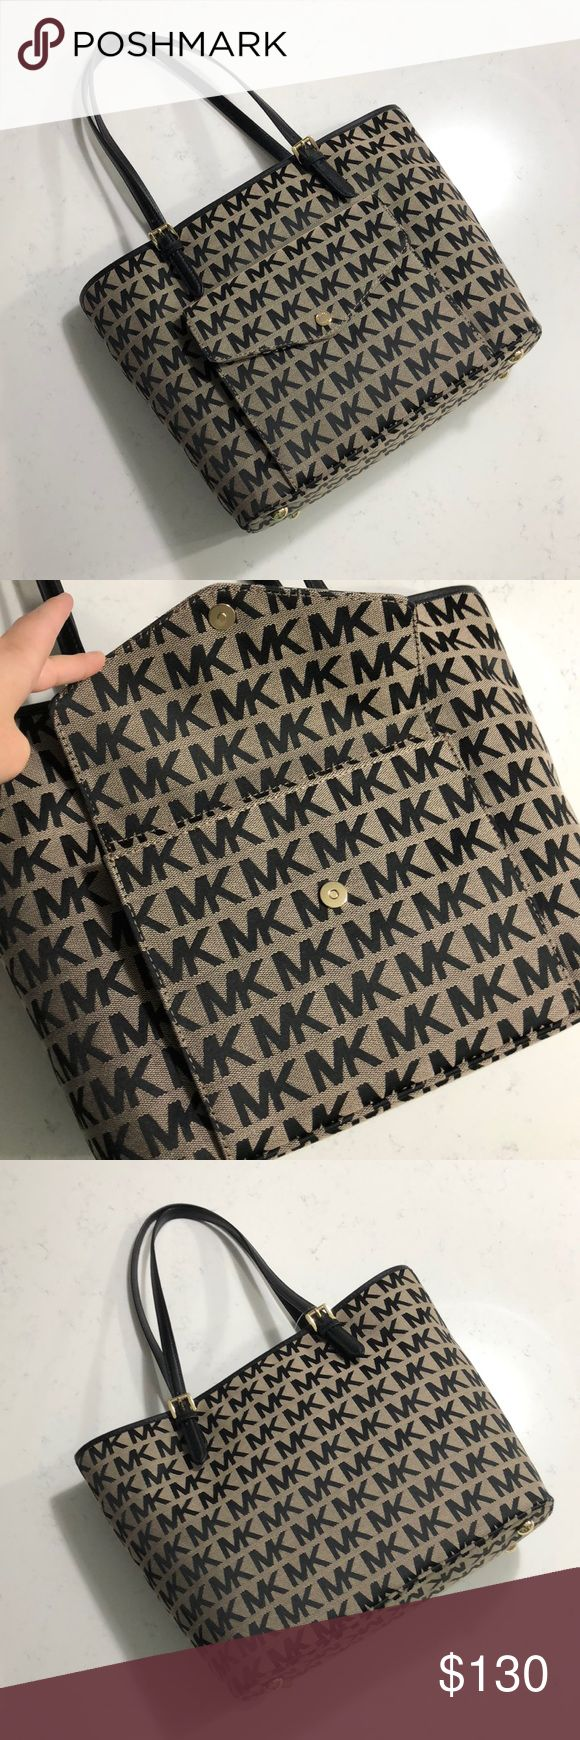 "Michael Kors Jet Set Snap Pocket Tote Jacquard Fashion meets function with this chic handbag, specially designed with a padded interior to fit most laptops and tablets. Base 12"" x 6"", height 11"", handle drop 8.5"" MICHAEL Michael Kors Bags Totes"